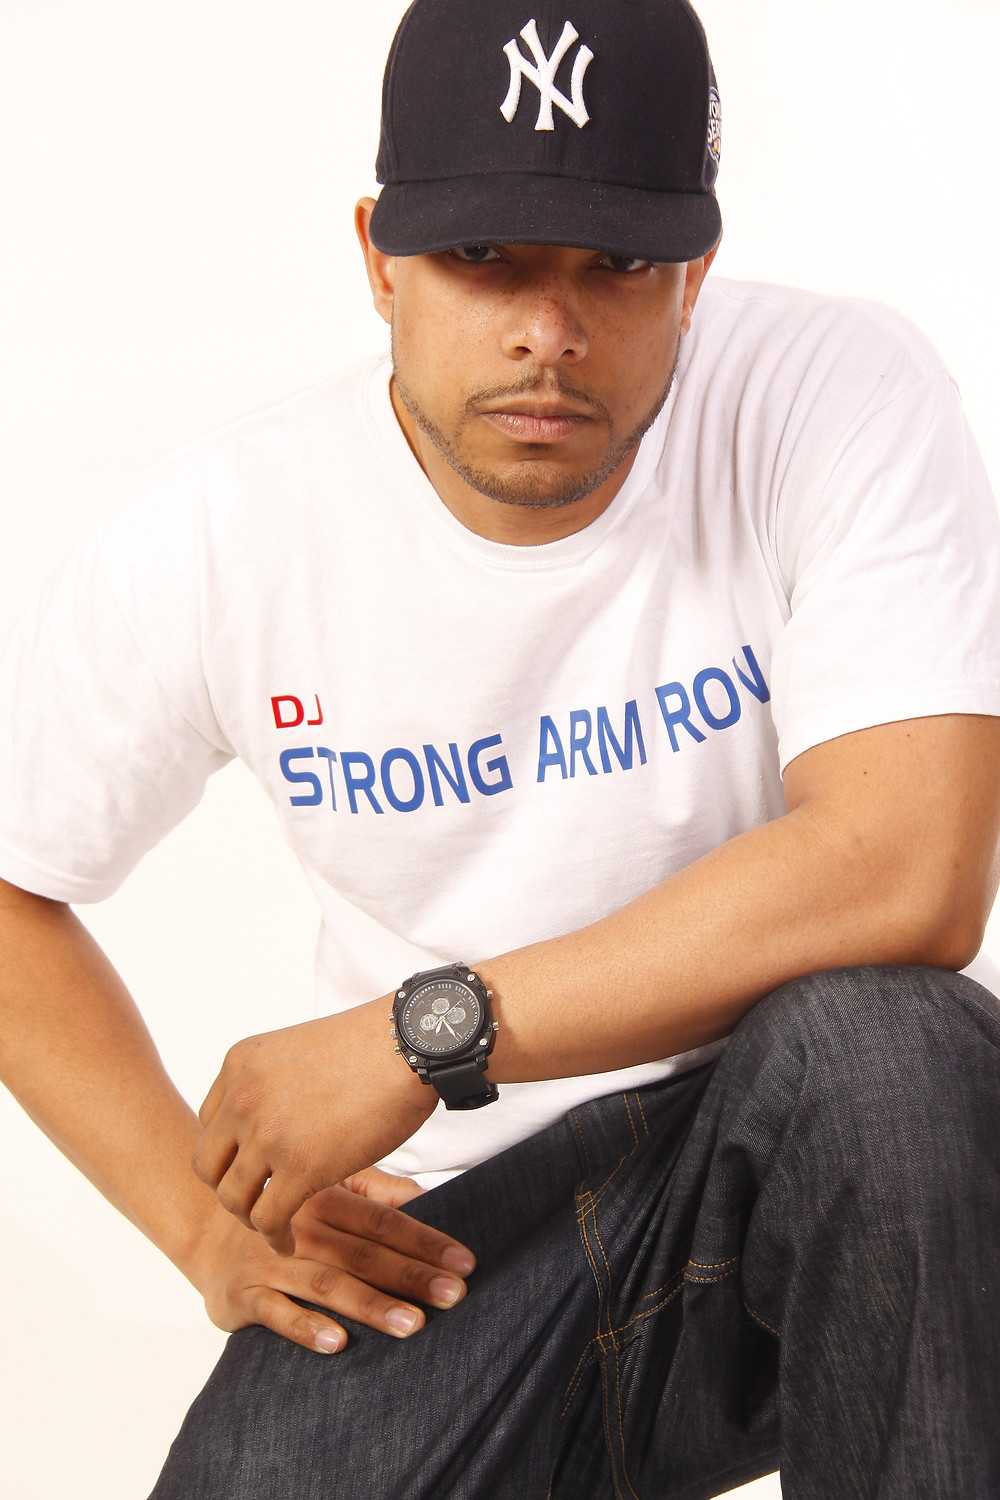 Click link for that DJ Strong Arm Ron (30 Min Blend)